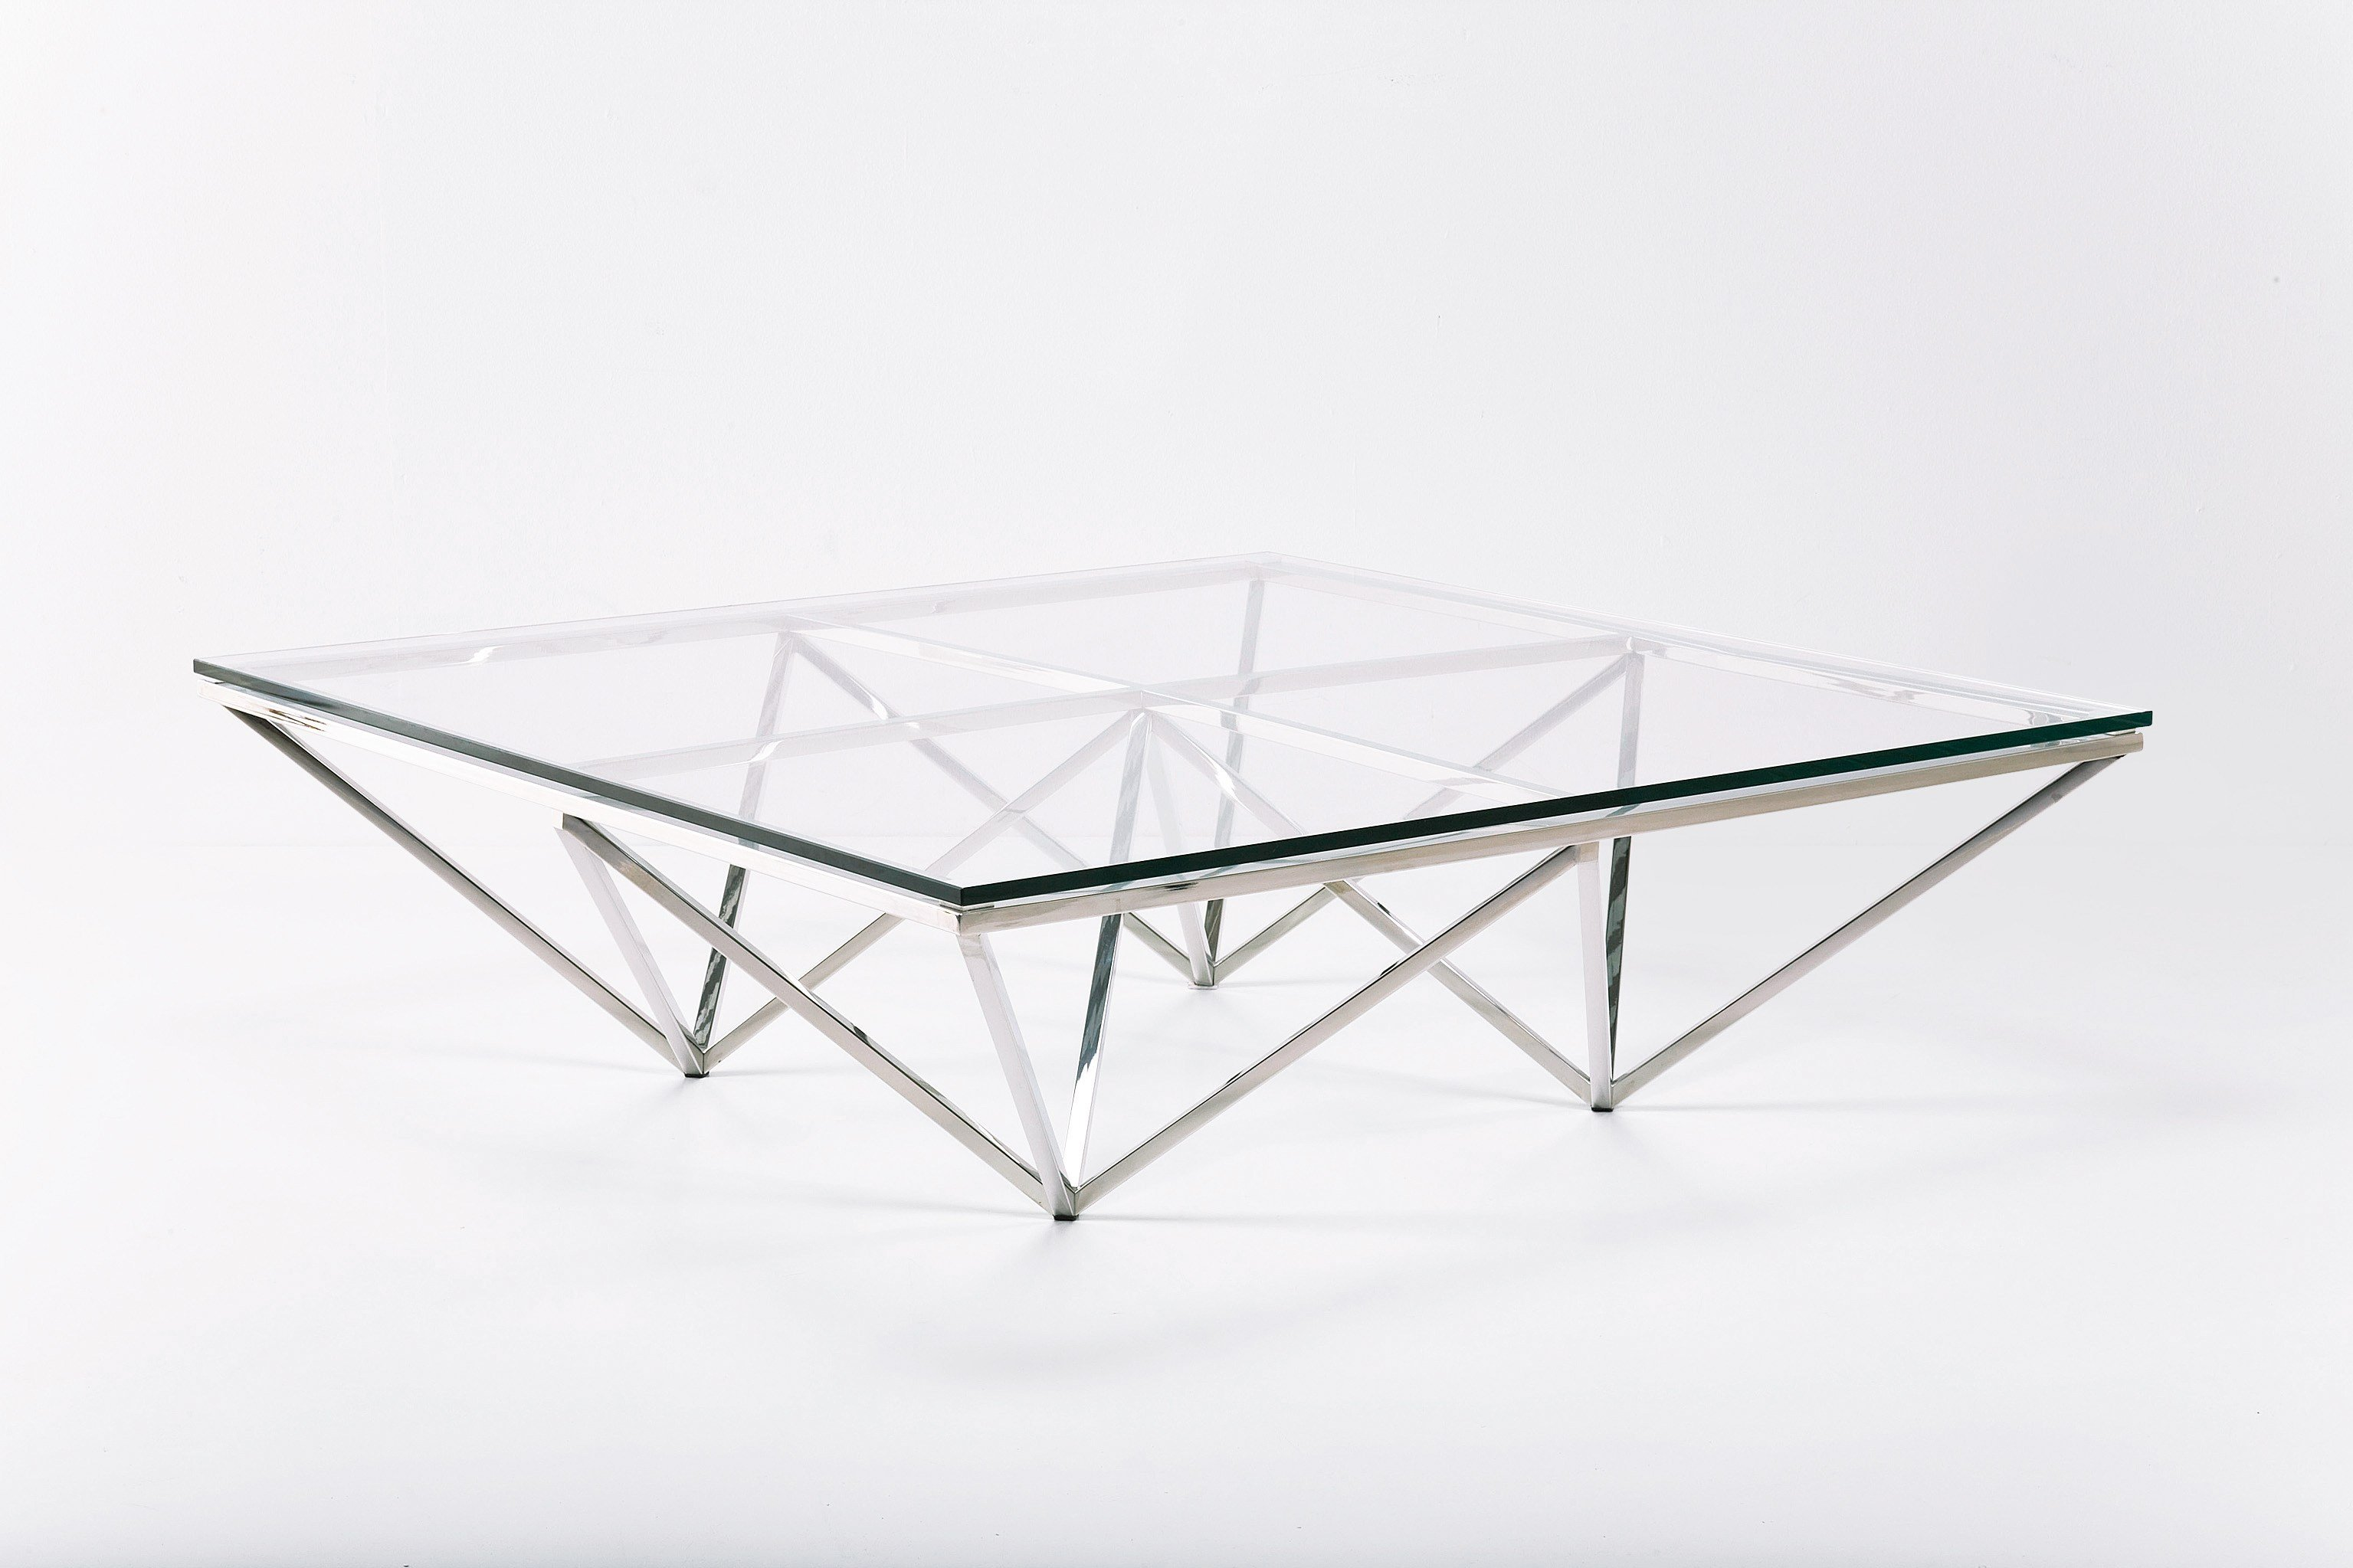 Table de salon en verre network by kare design - Tables de salon en verre ...